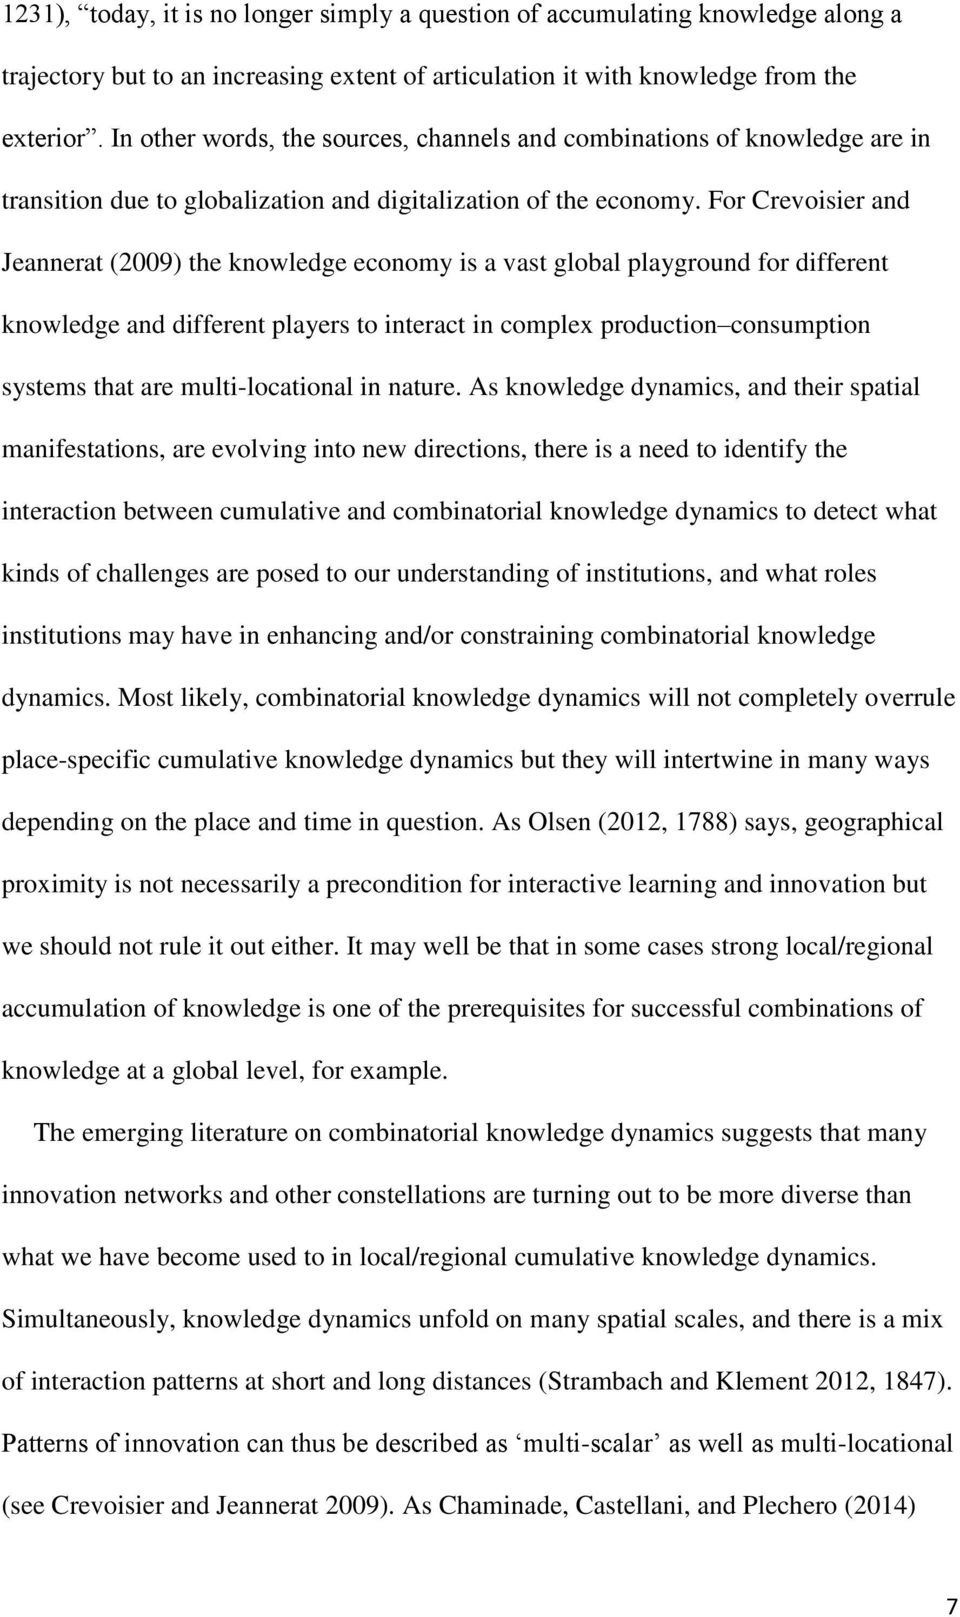 For Crevoisier and Jeannerat (2009) the knowledge economy is a vast global playground for different knowledge and different players to interact in complex production consumption systems that are